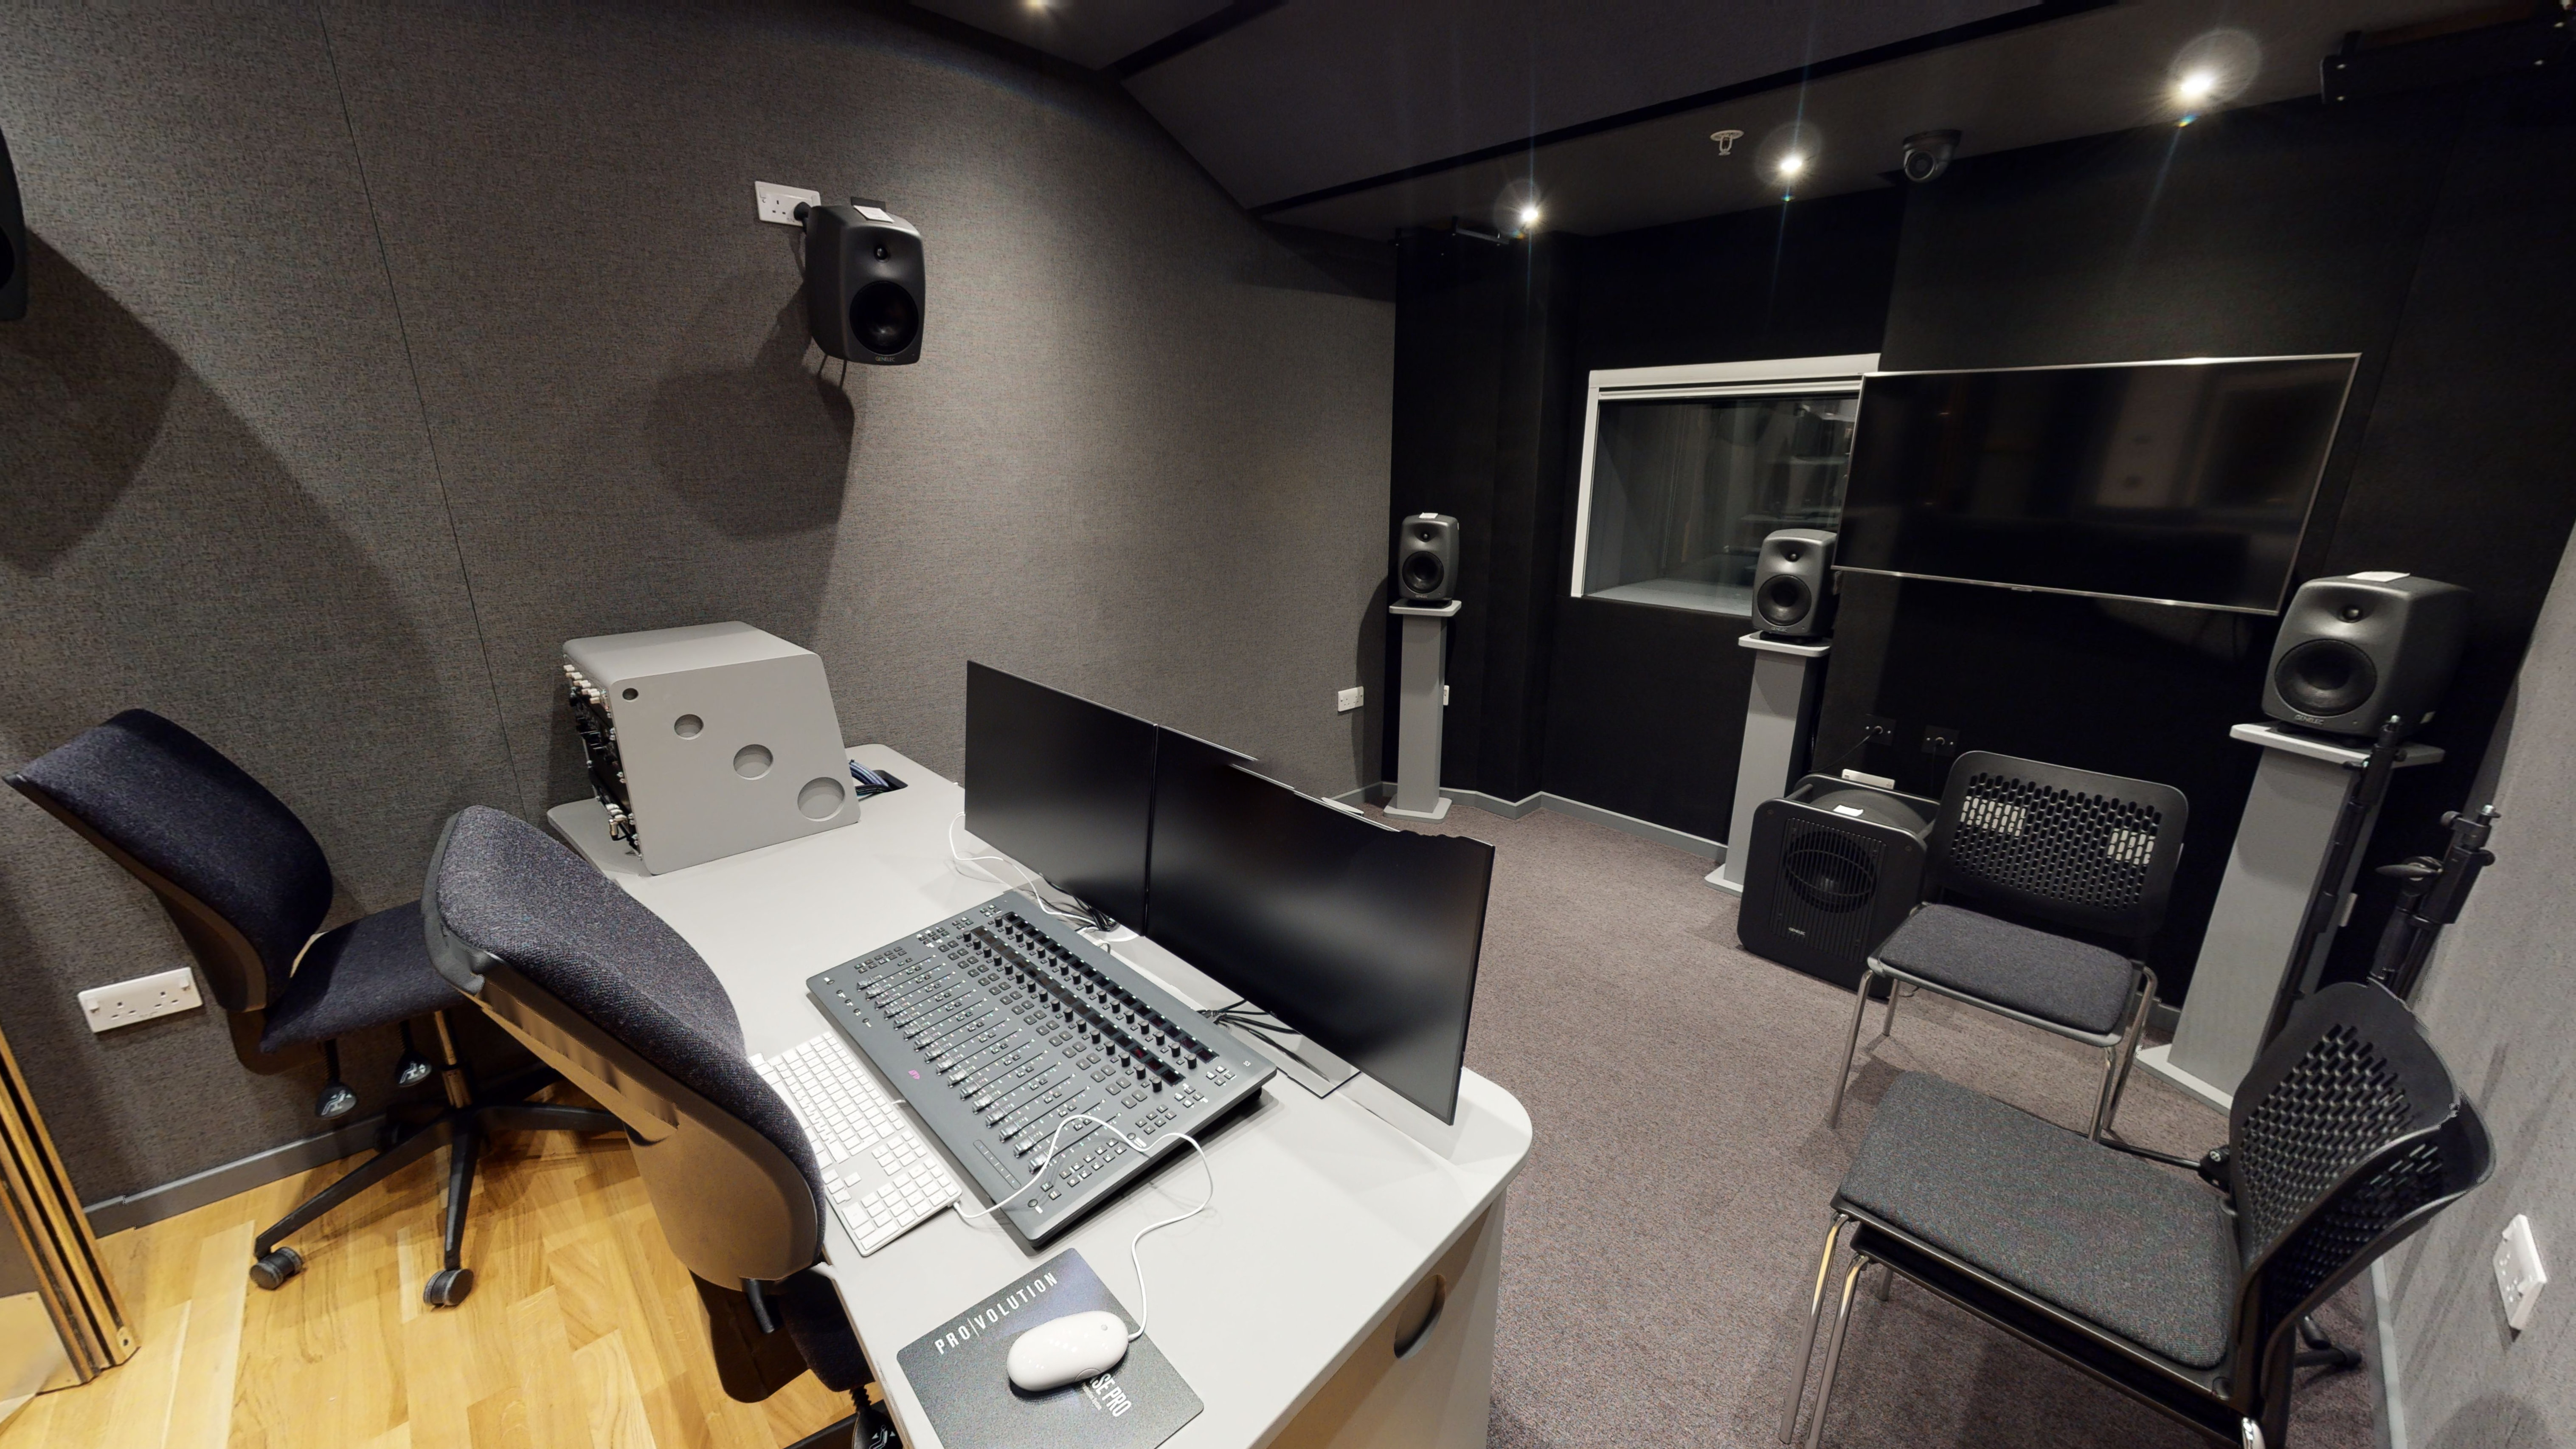 A control desk, with screens, speakers and a seating area in front of it.